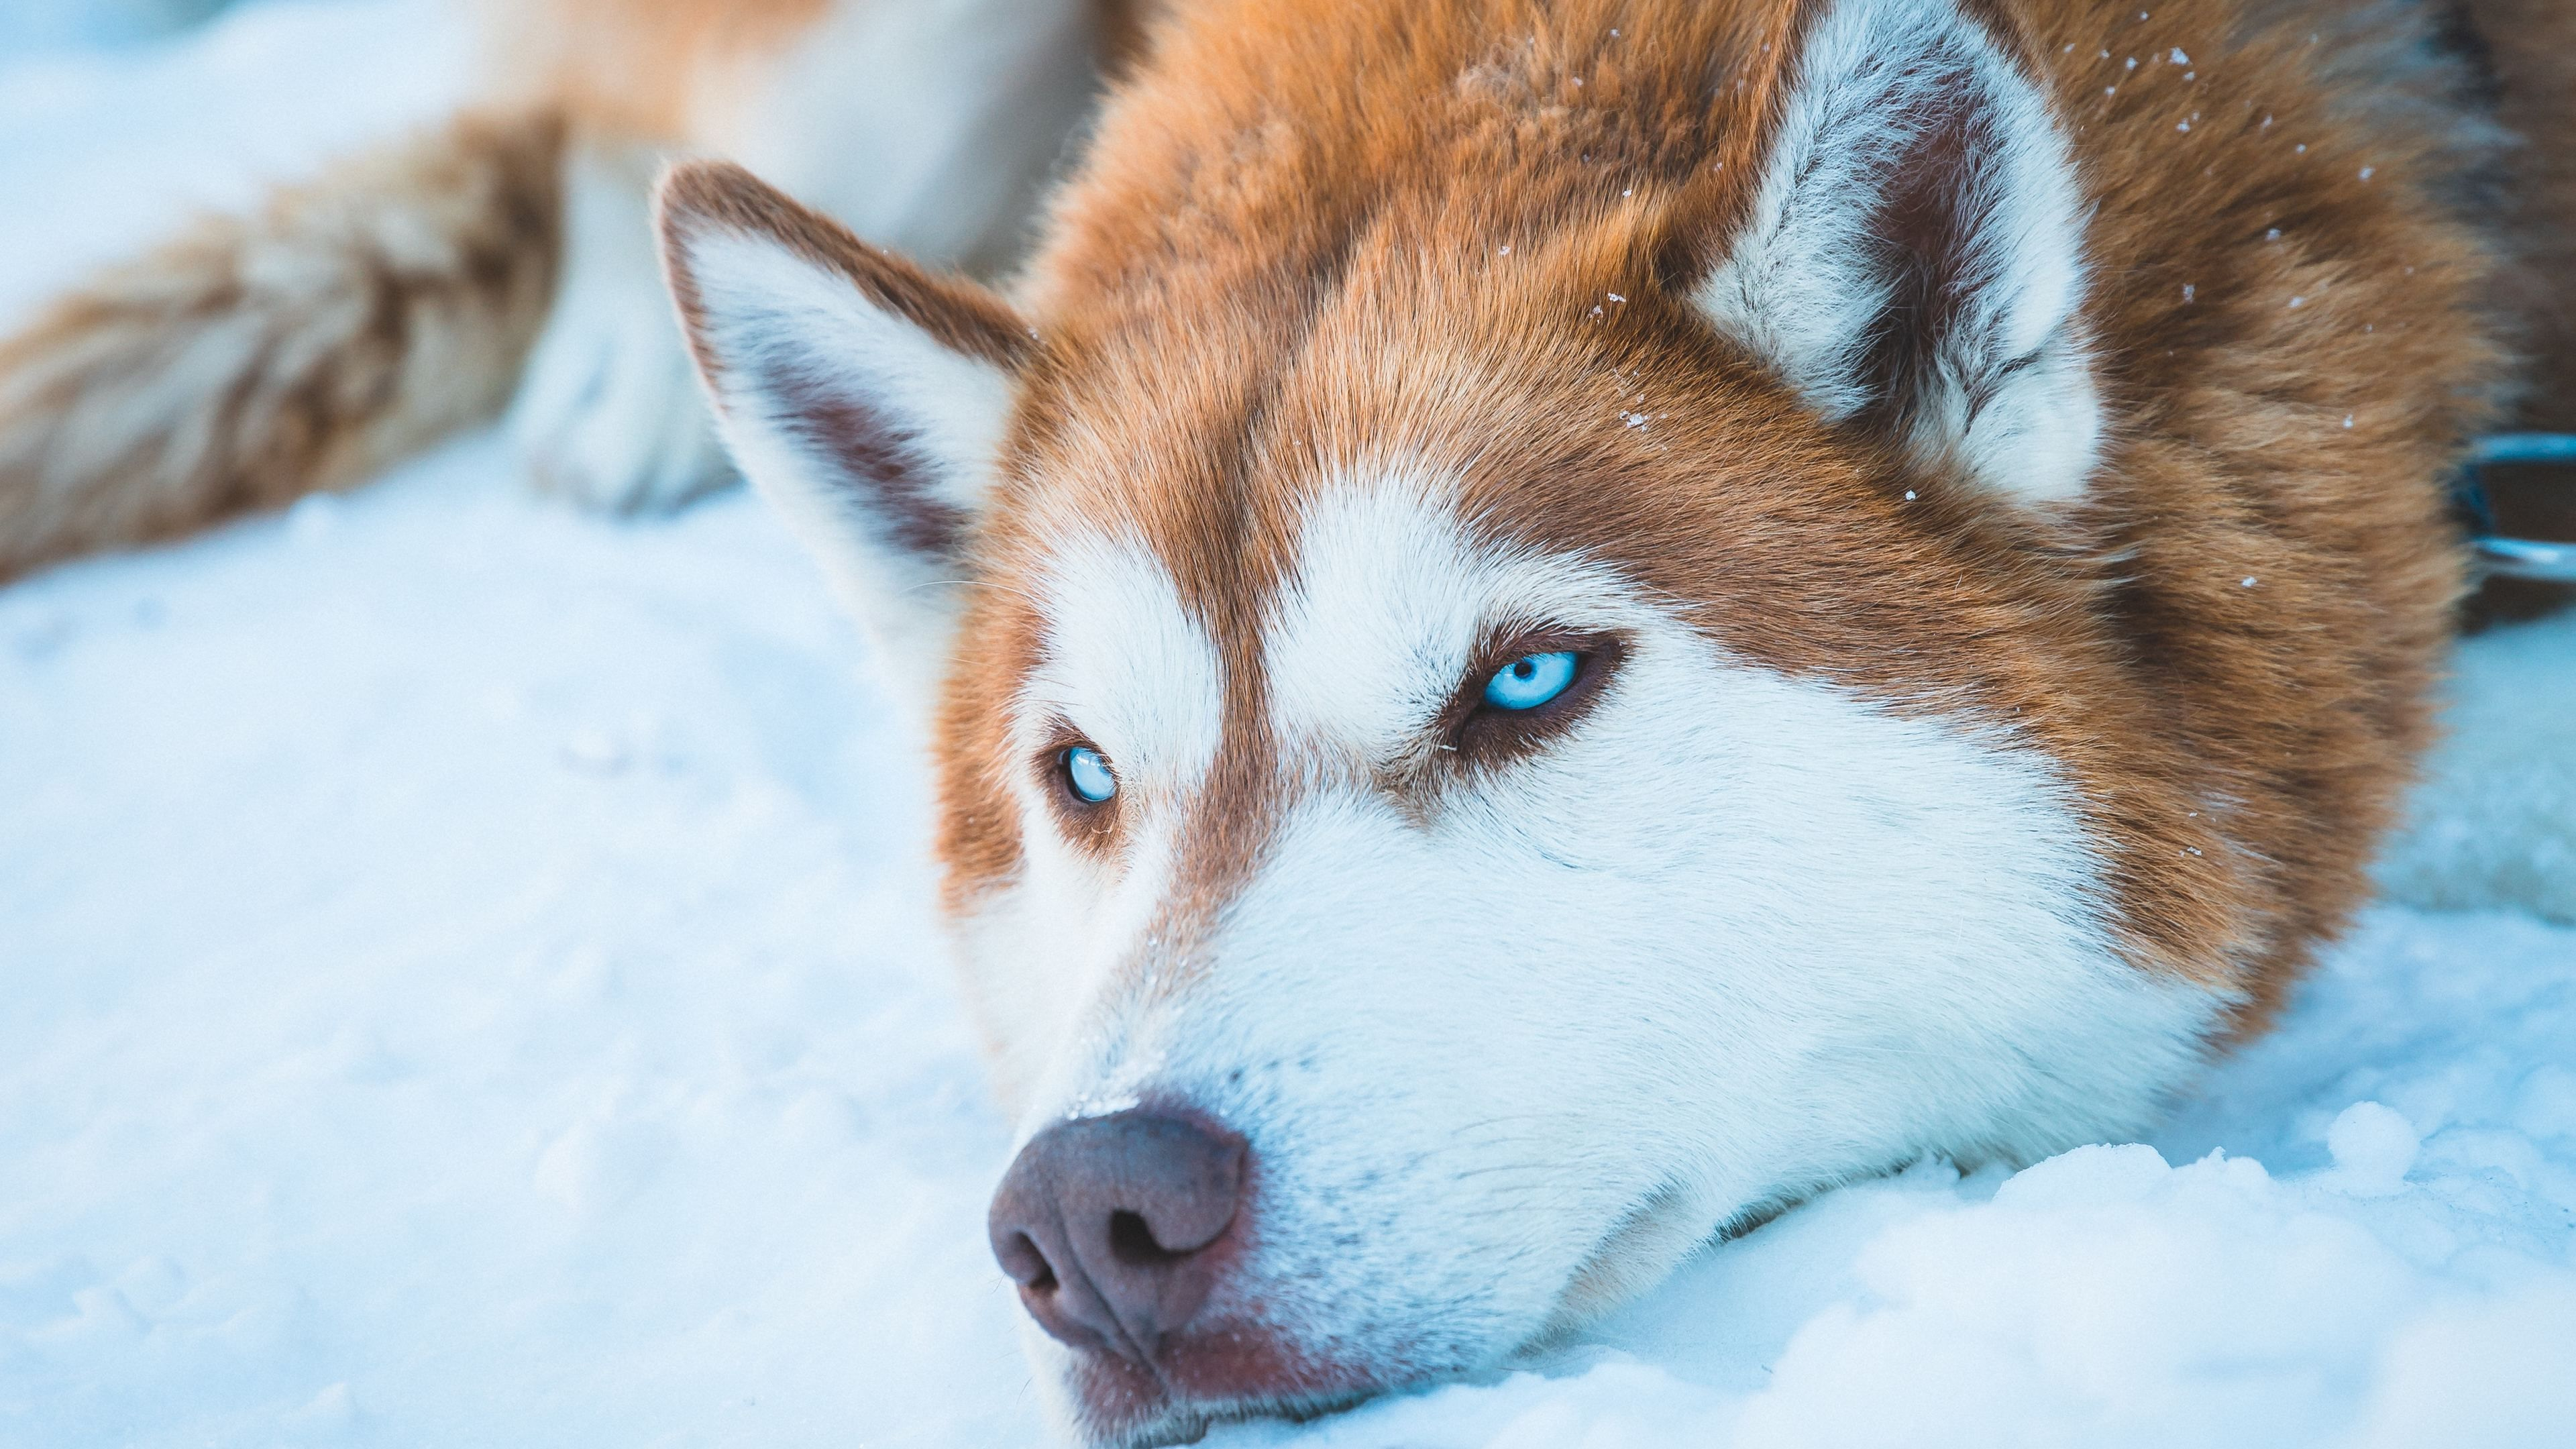 Wallpaper 4k Siberian Husky In Snow 4k 4k Wallpapers Animals Wallpapers Dog Wallpapers Hd Wallpapers Siberian Husky Wallpapers Em 2020 Fundos Bonitos